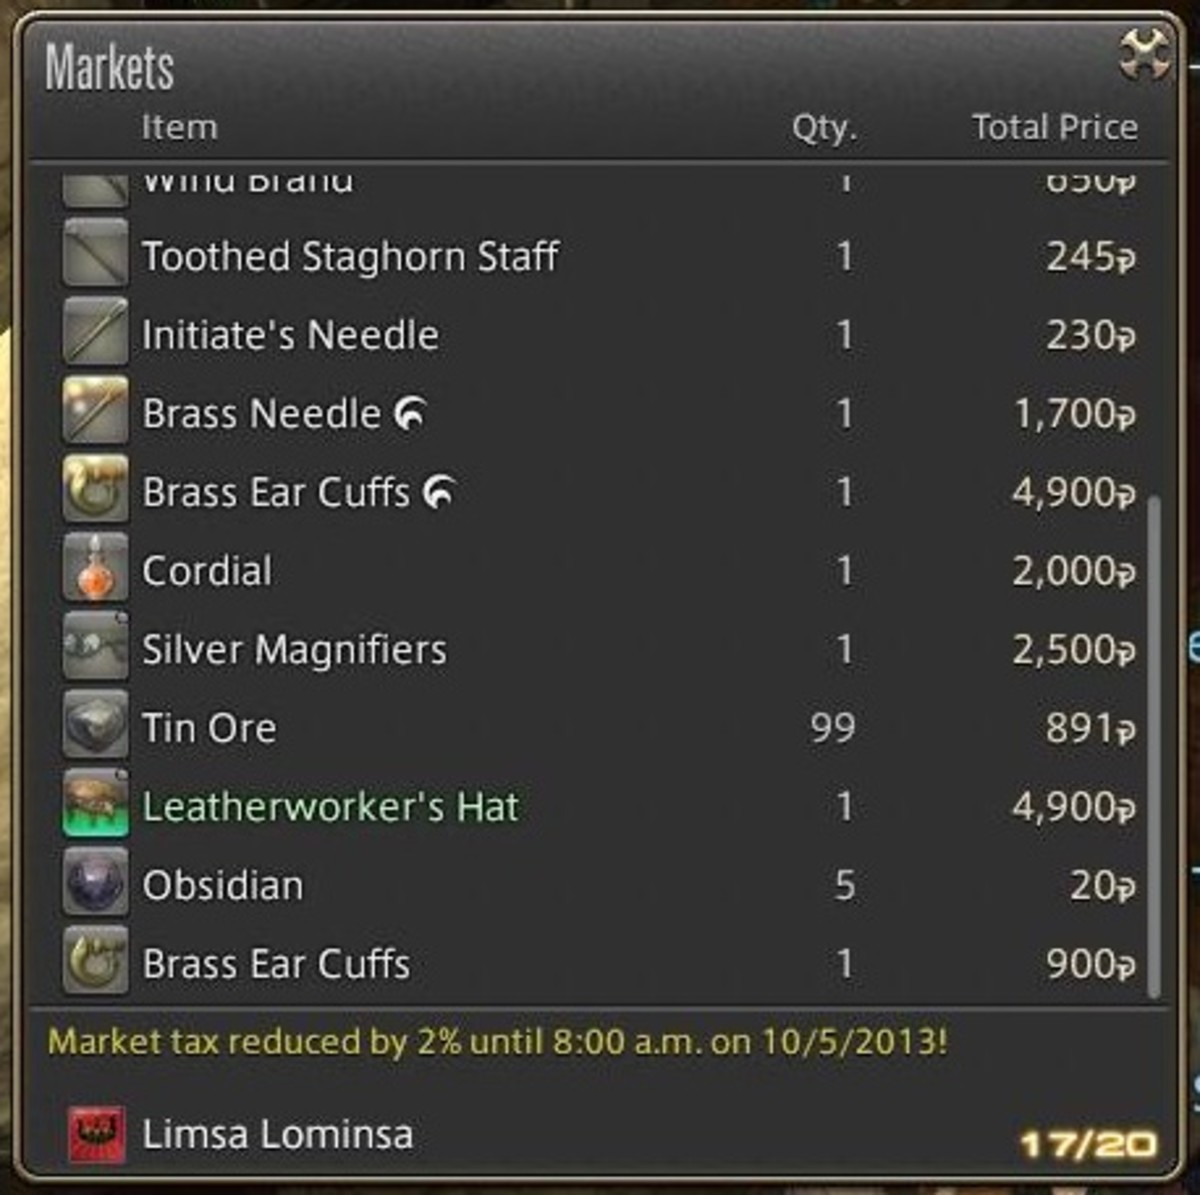 You will never sell items directly, your retainer(s) will do that for you.